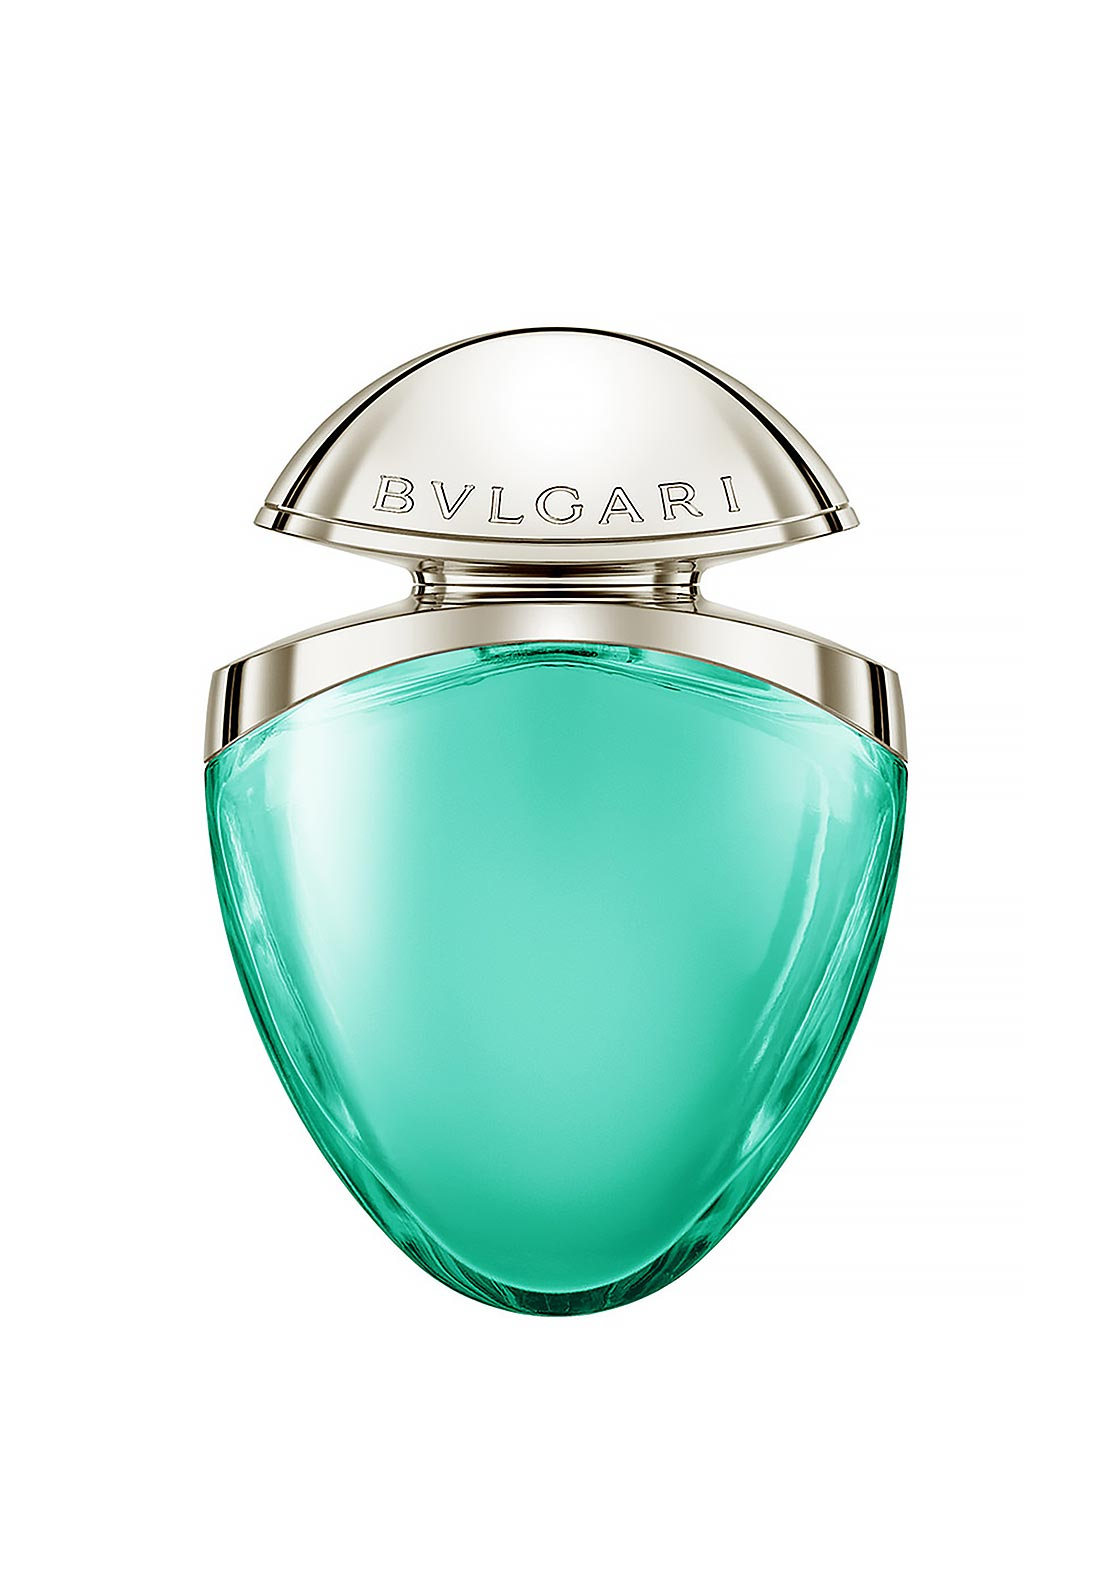 Bvlgari Omnia Paraiba The Jewel Charms Collection Eau de Toilette, 25ml